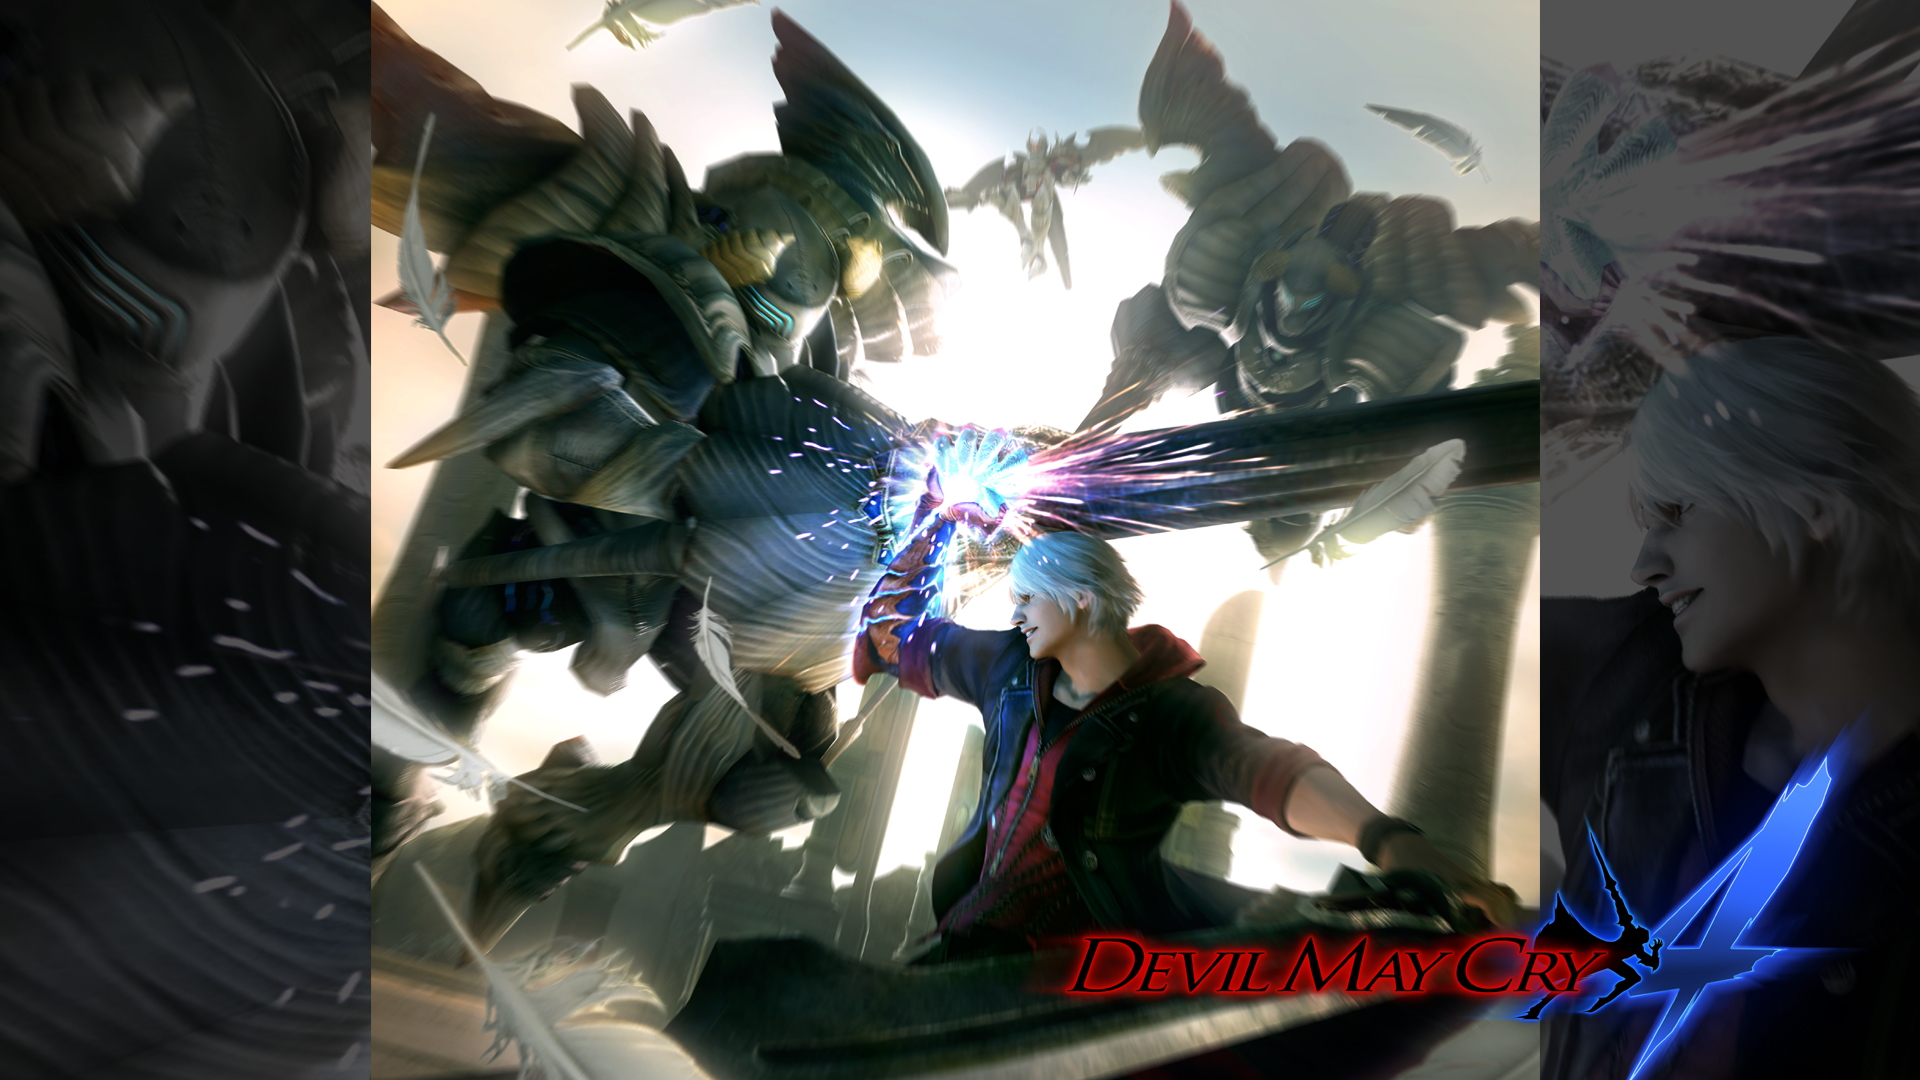 Nero Fight - DMC4 Wallpapers